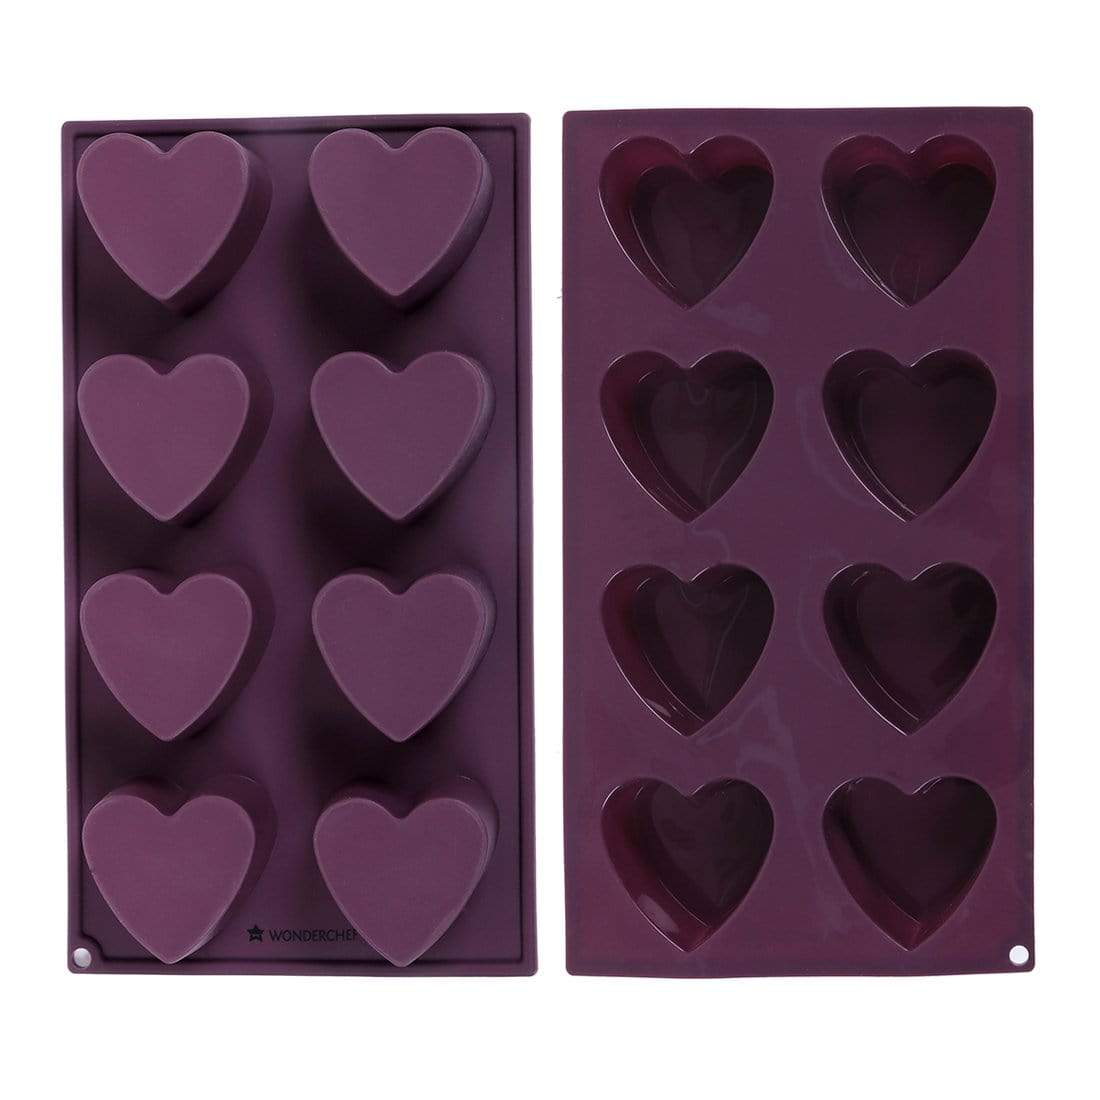 Platinum Silicone Heart Cake Mould